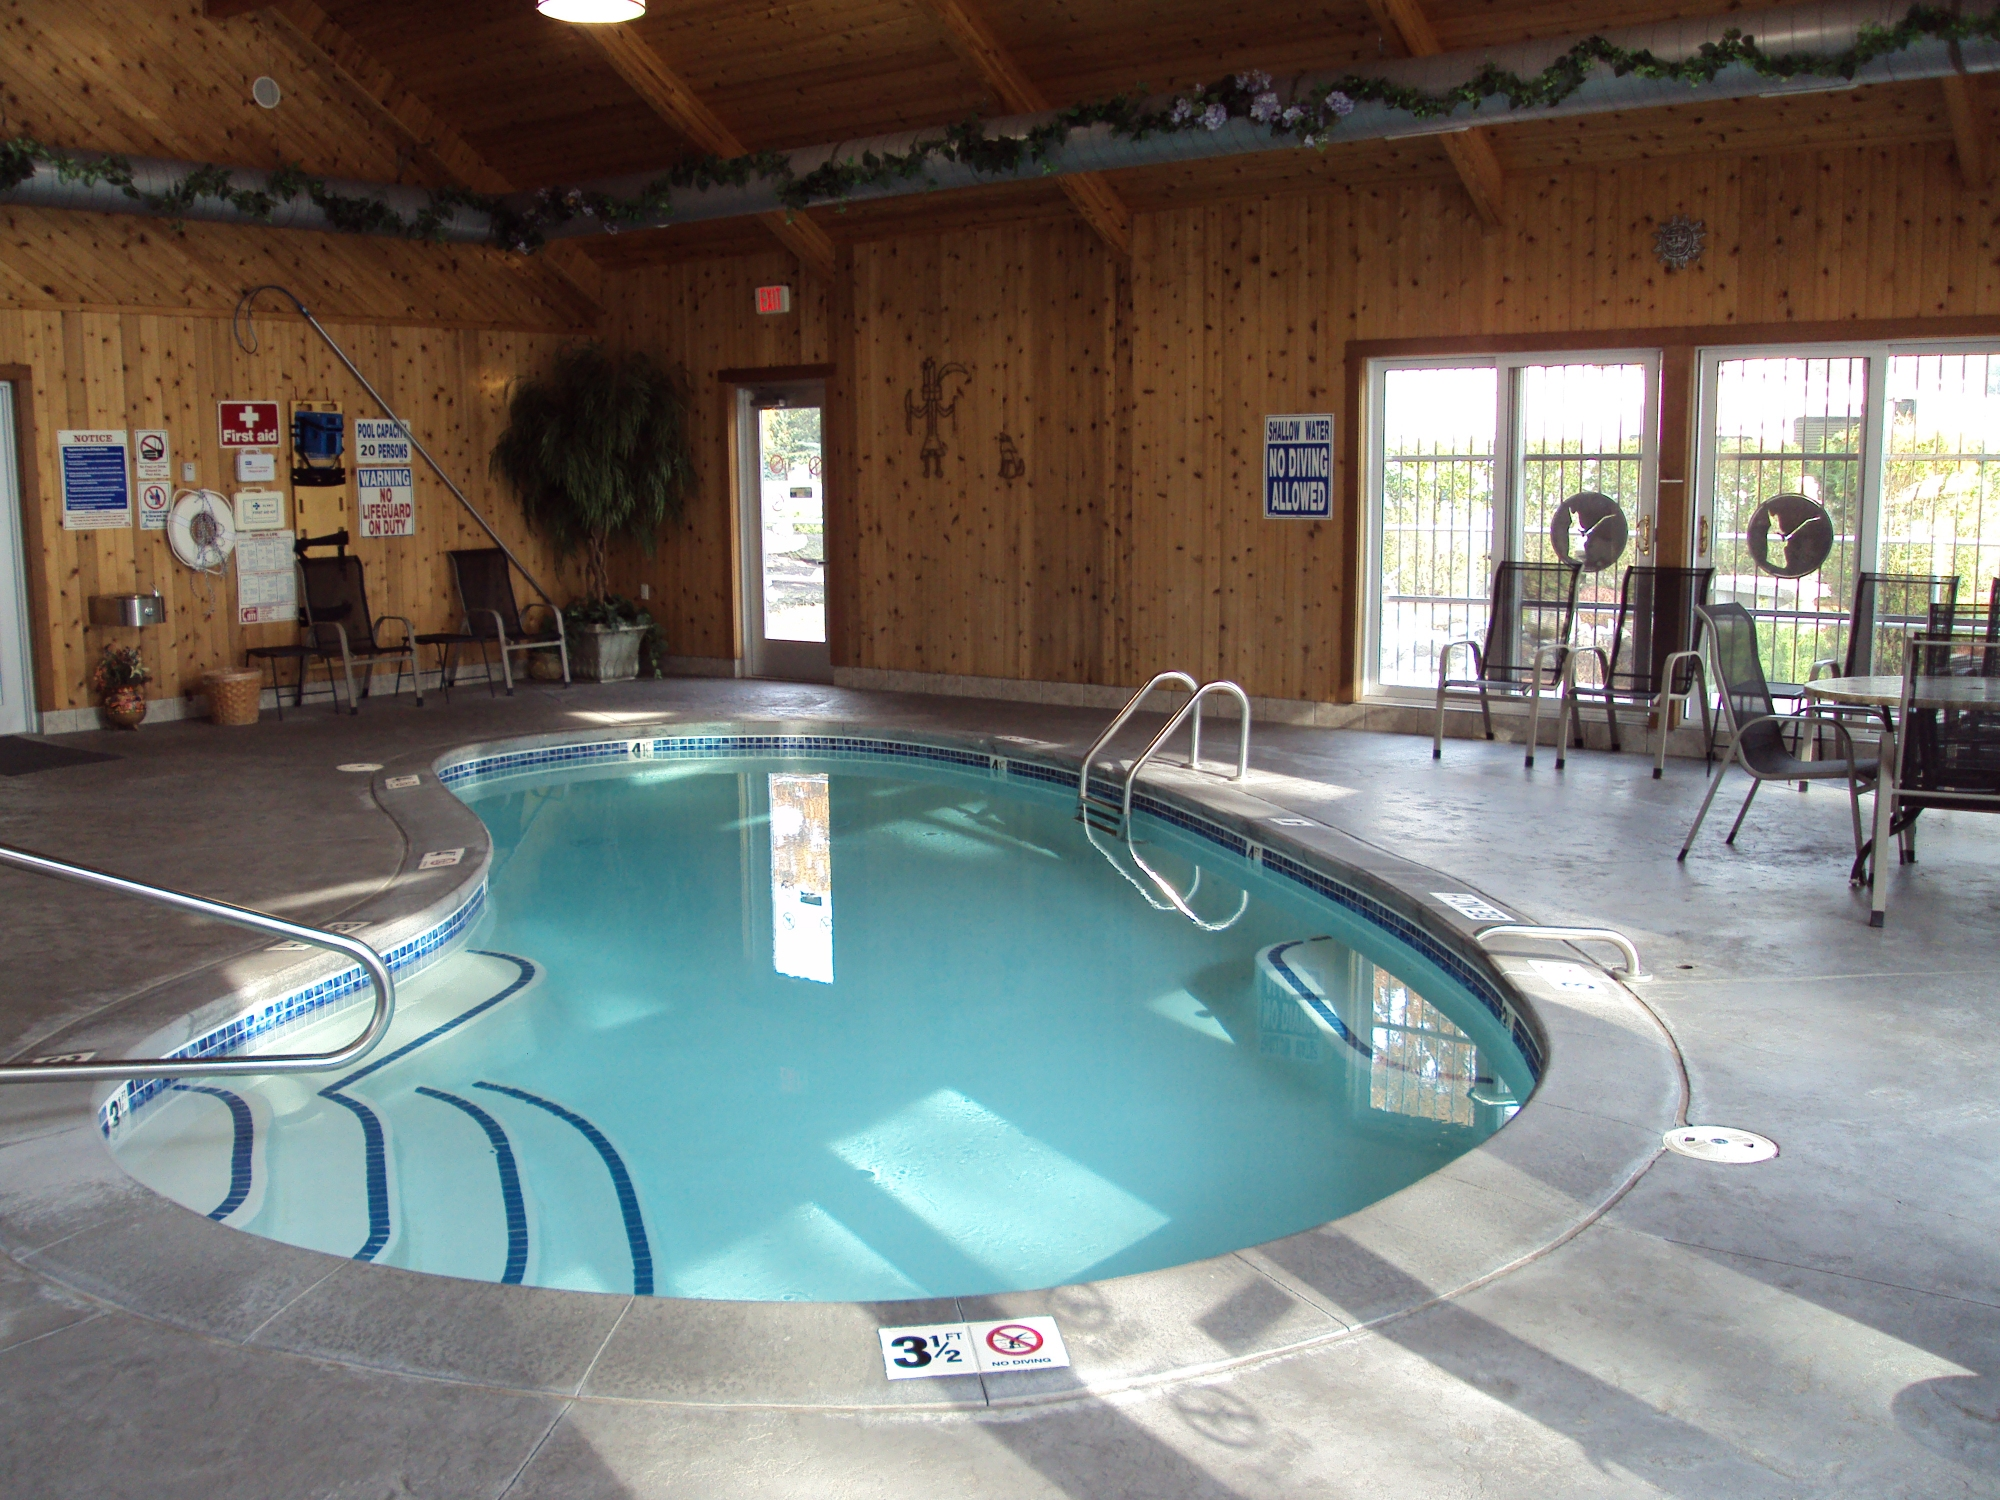 Wonderful The Indoor Pool And Hot Tub Are Available Daily From 9am To 9pm, For The  Entire Camping Season! So, Make Sure To Pack Swim Suits, Regardless Of The  Expected ...